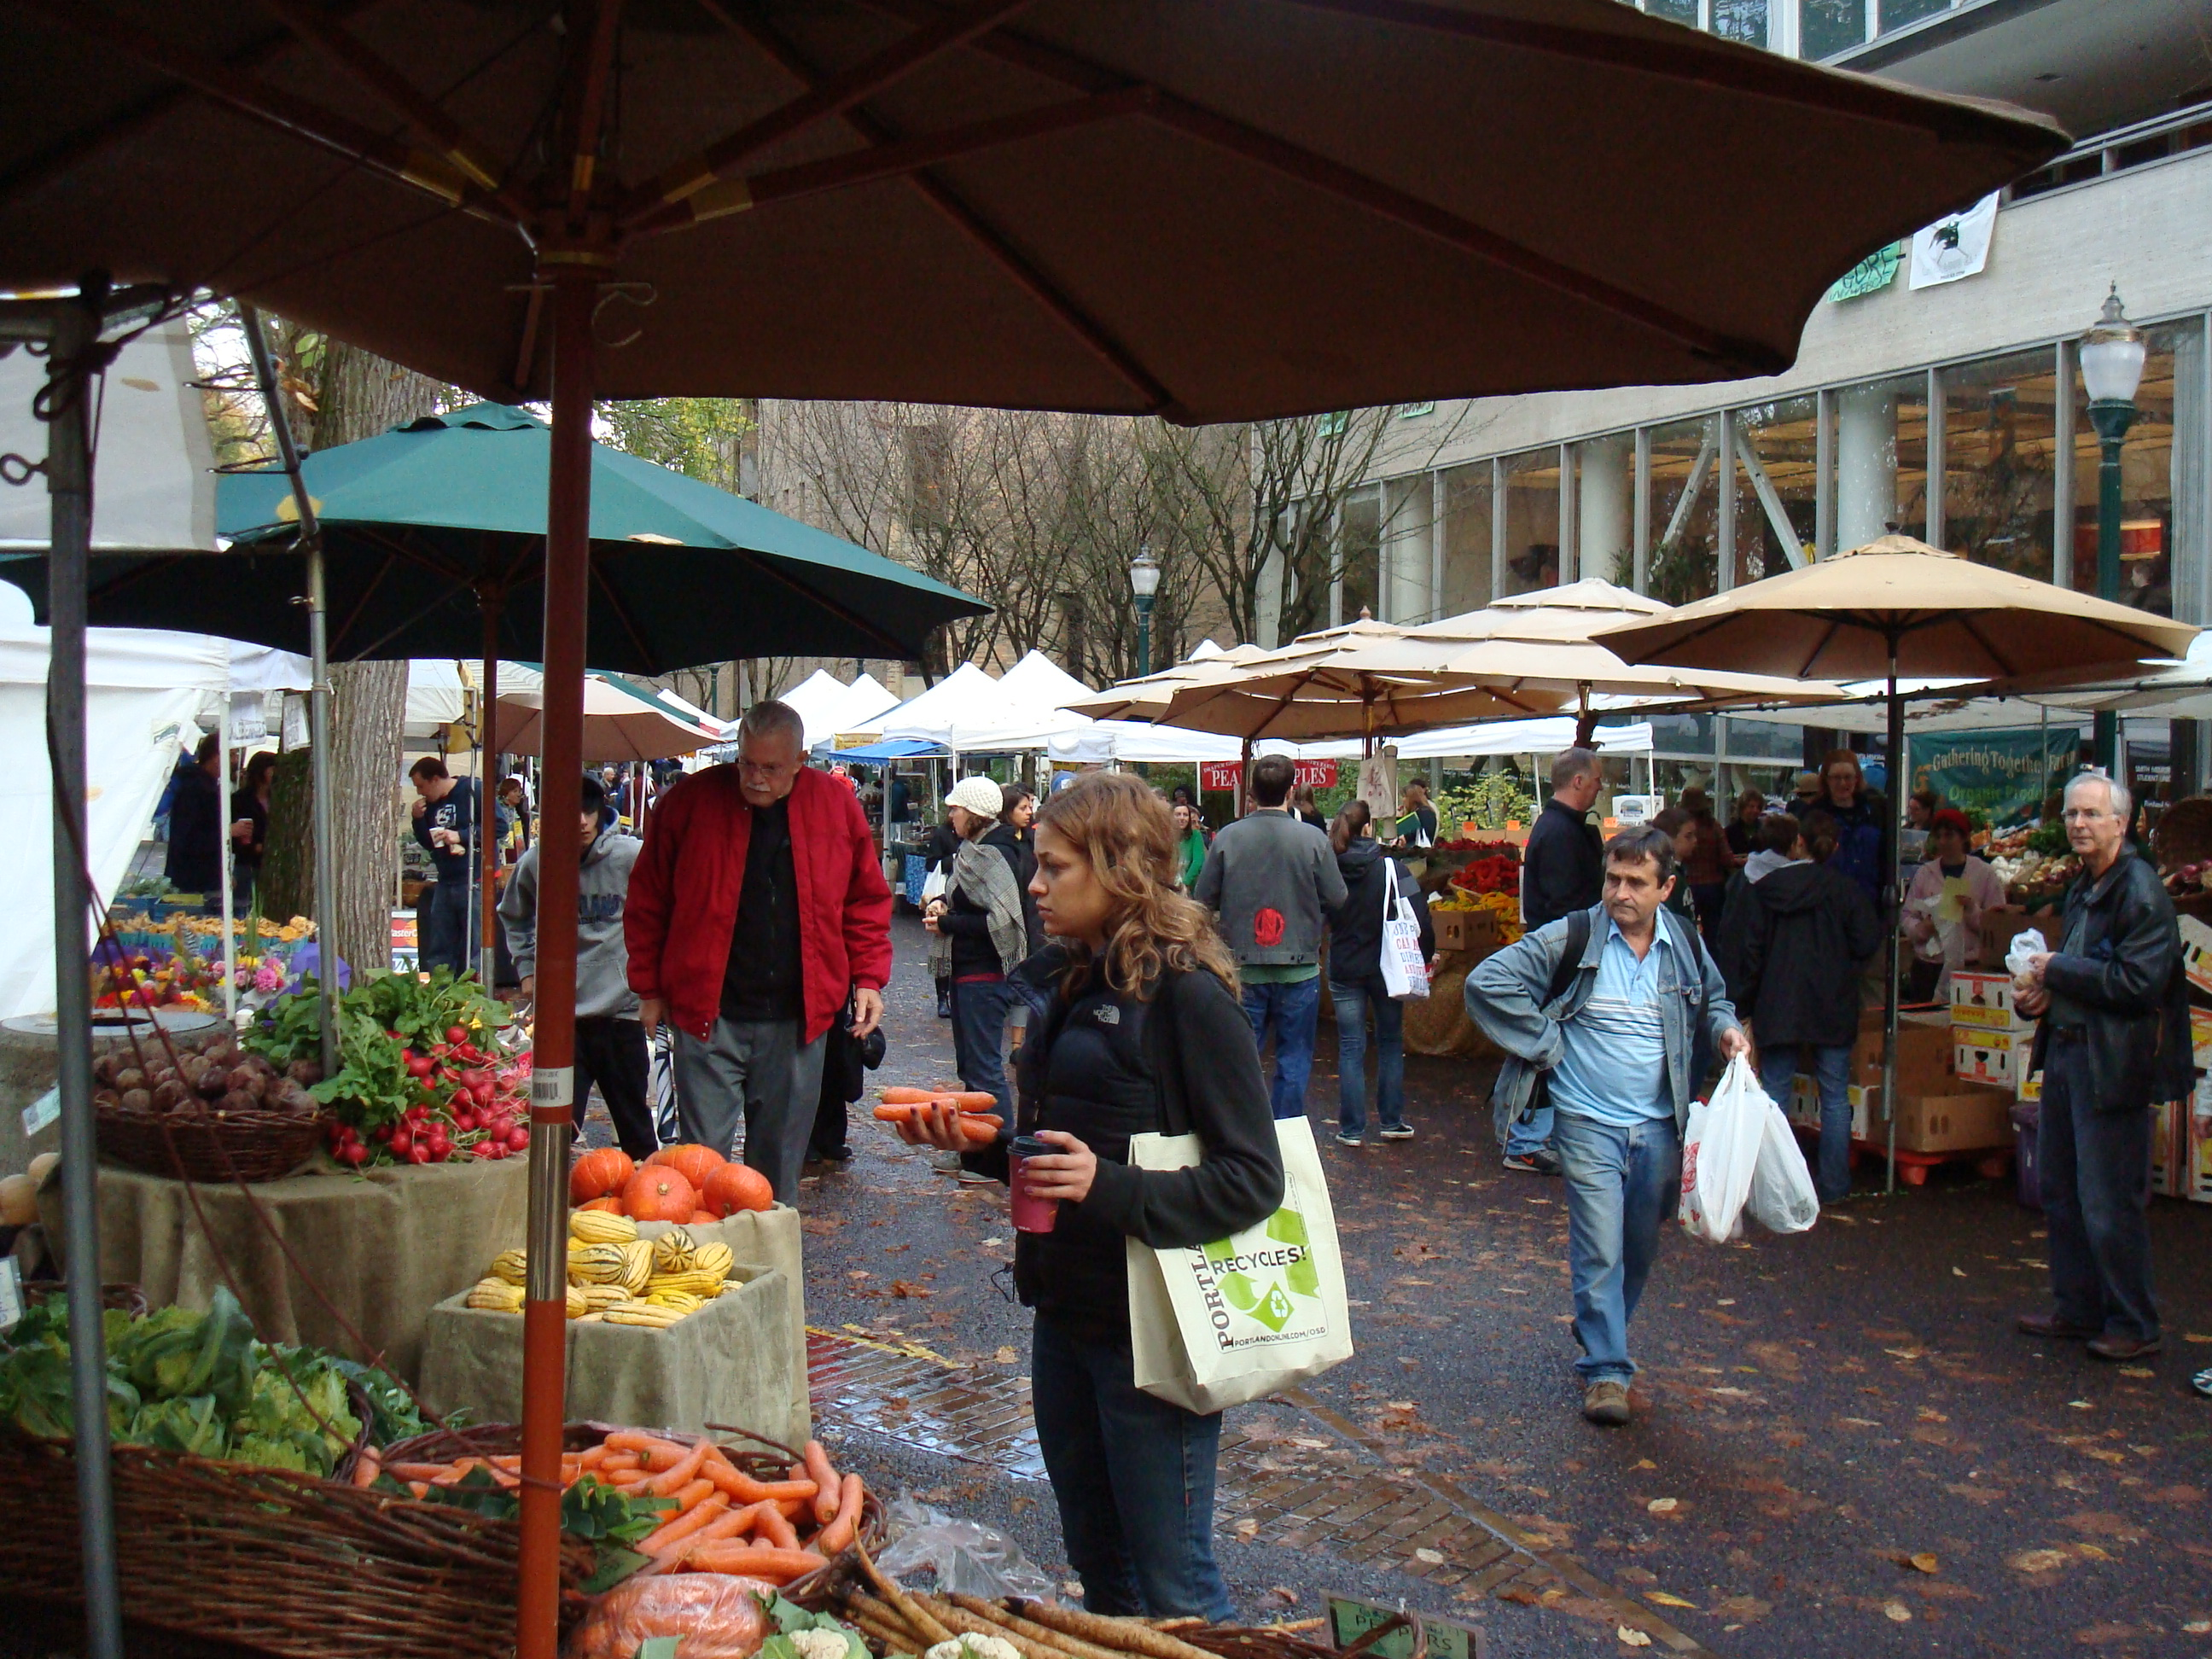 Portland's downtown Saturday farmers market